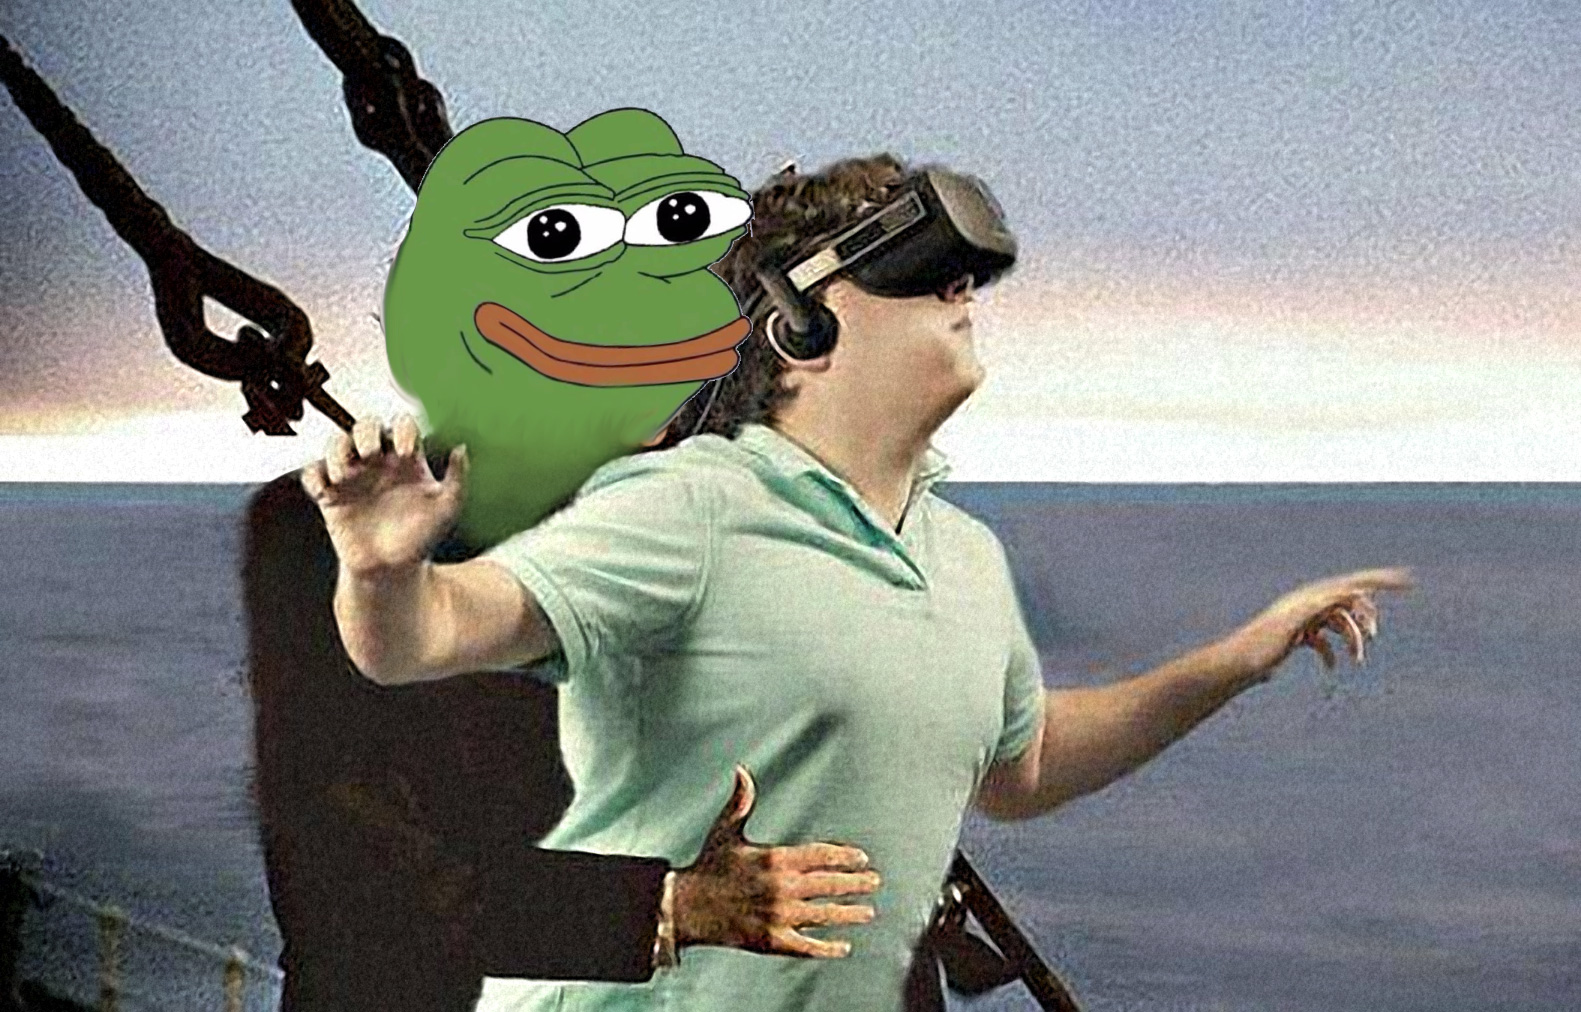 Oculus execs defend founder's support of Nazi propaganda machine